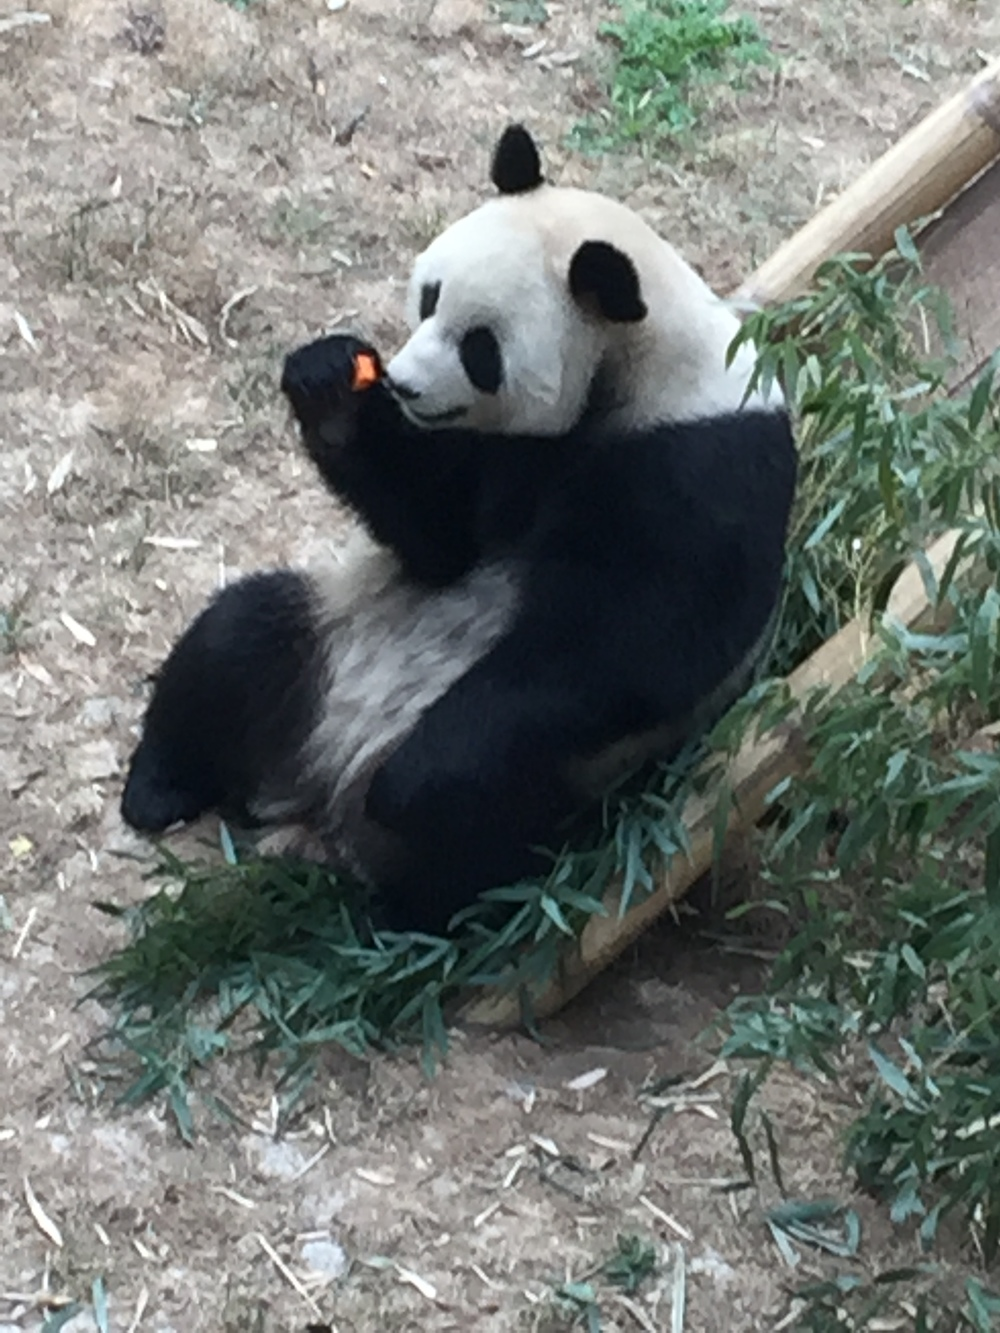 Panda's love carrots too!